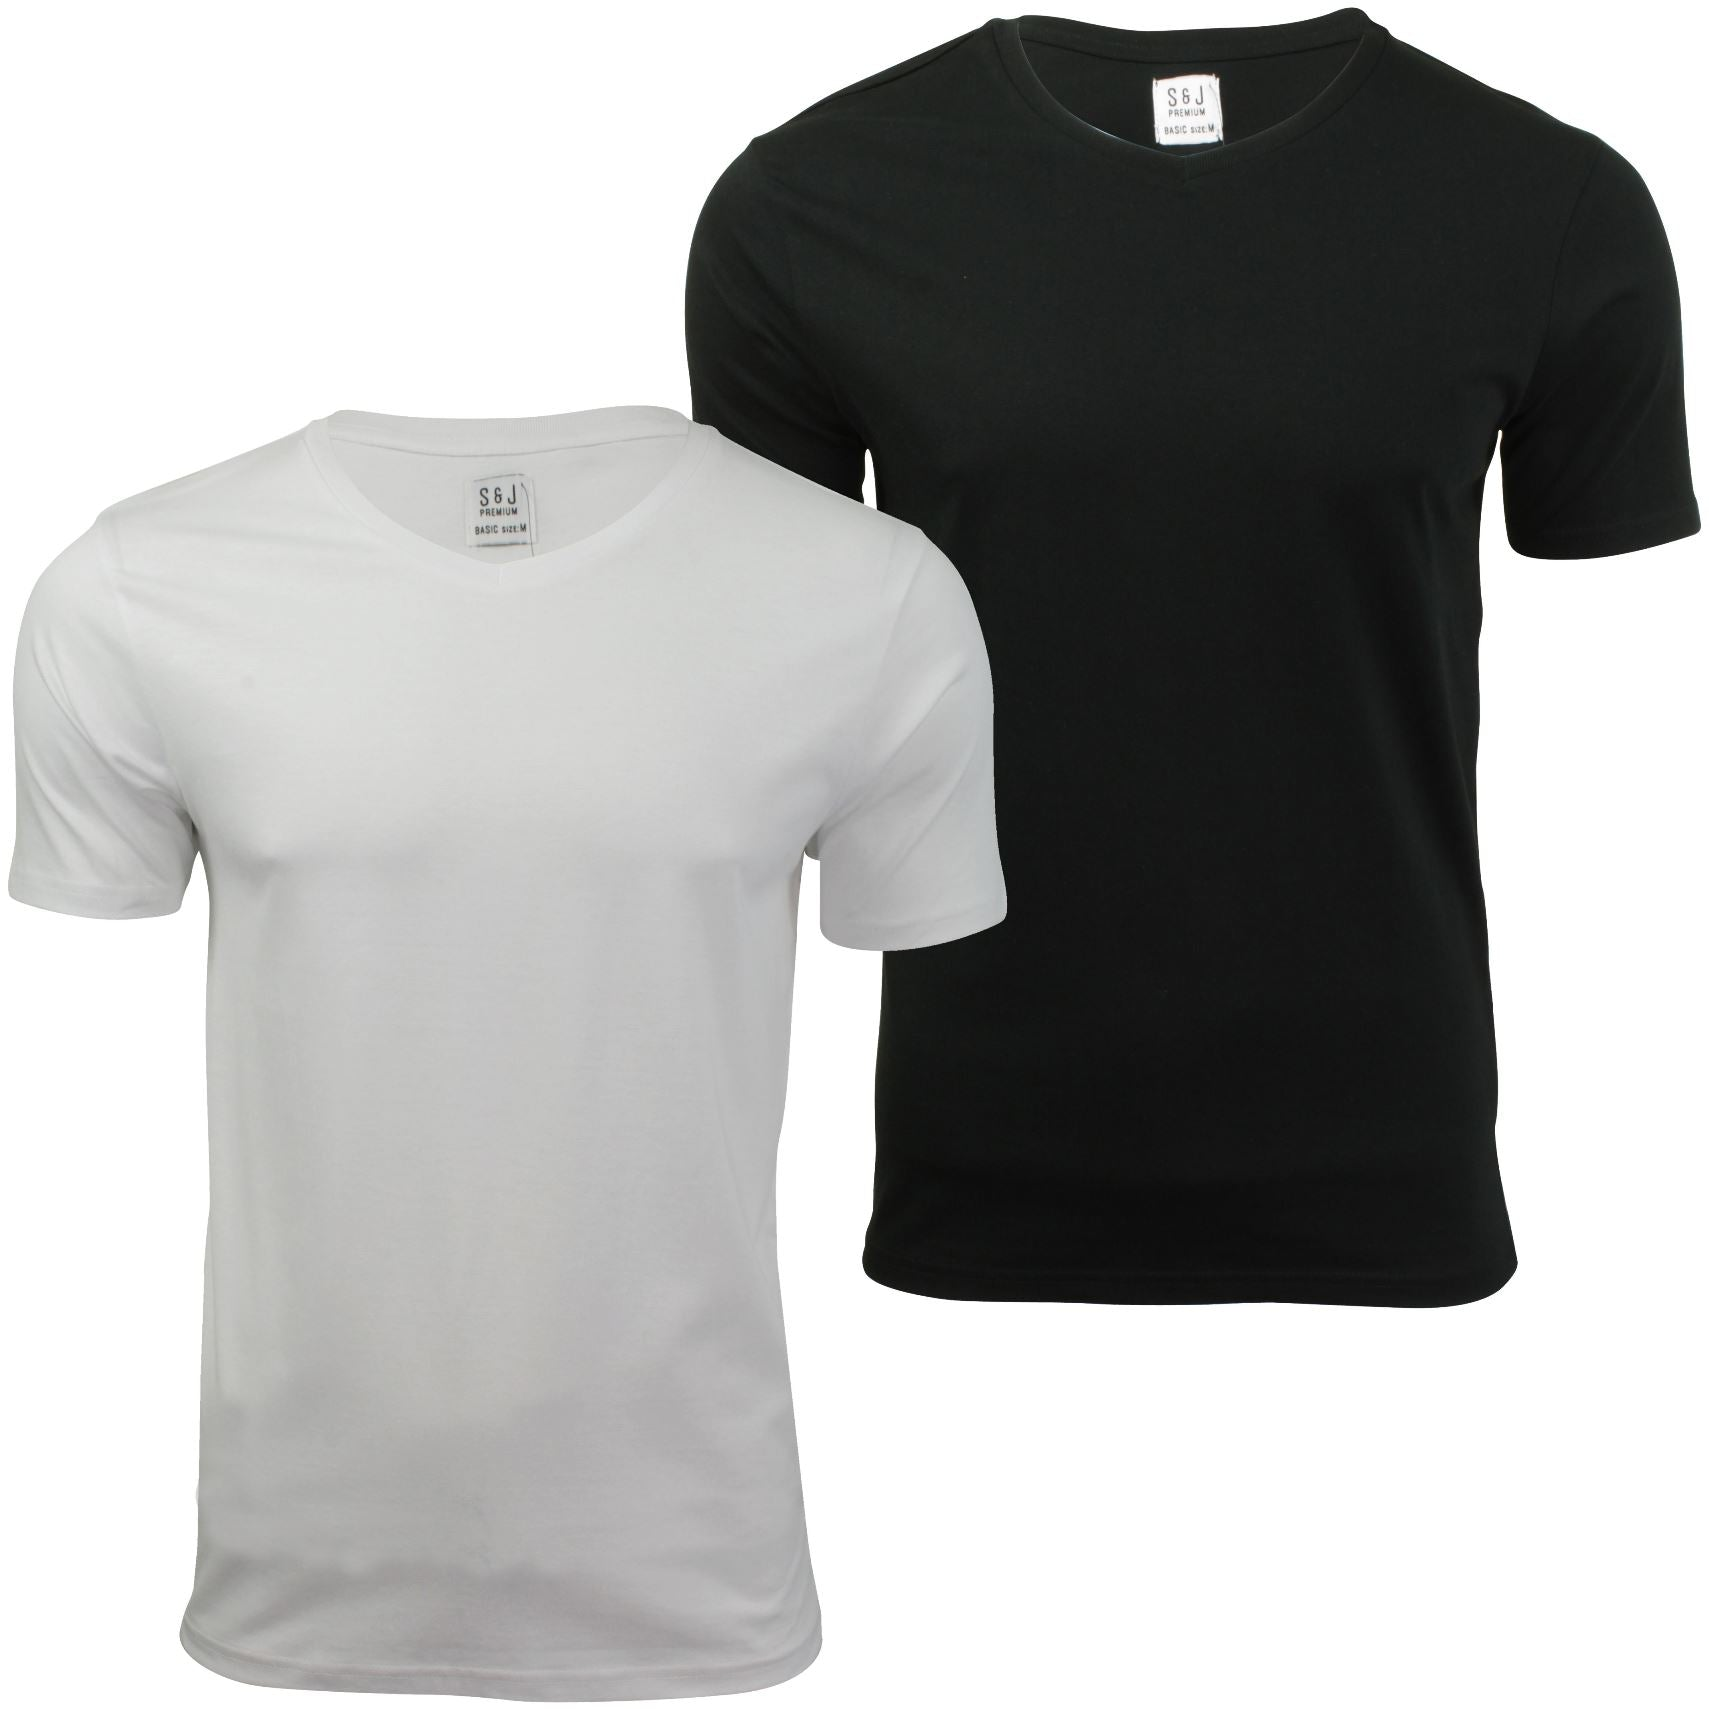 Mens (2-Pack) T-Shirts by Smith & Jones Short Sleeved-Main Image